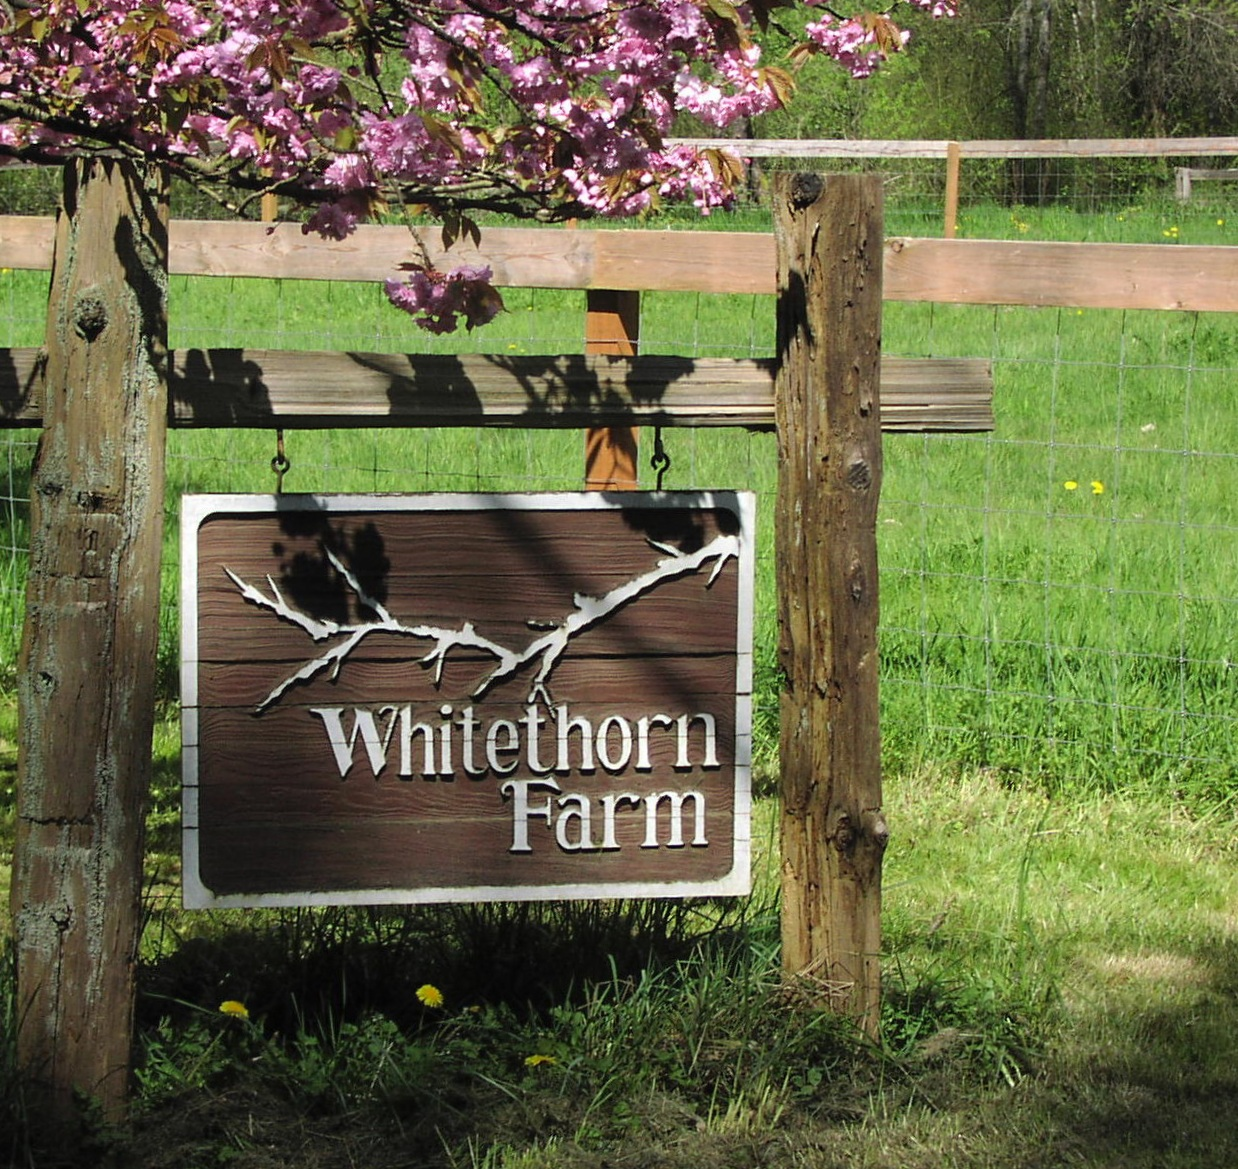 Whitethorn Farm Road Sign with Cherry Blossoms